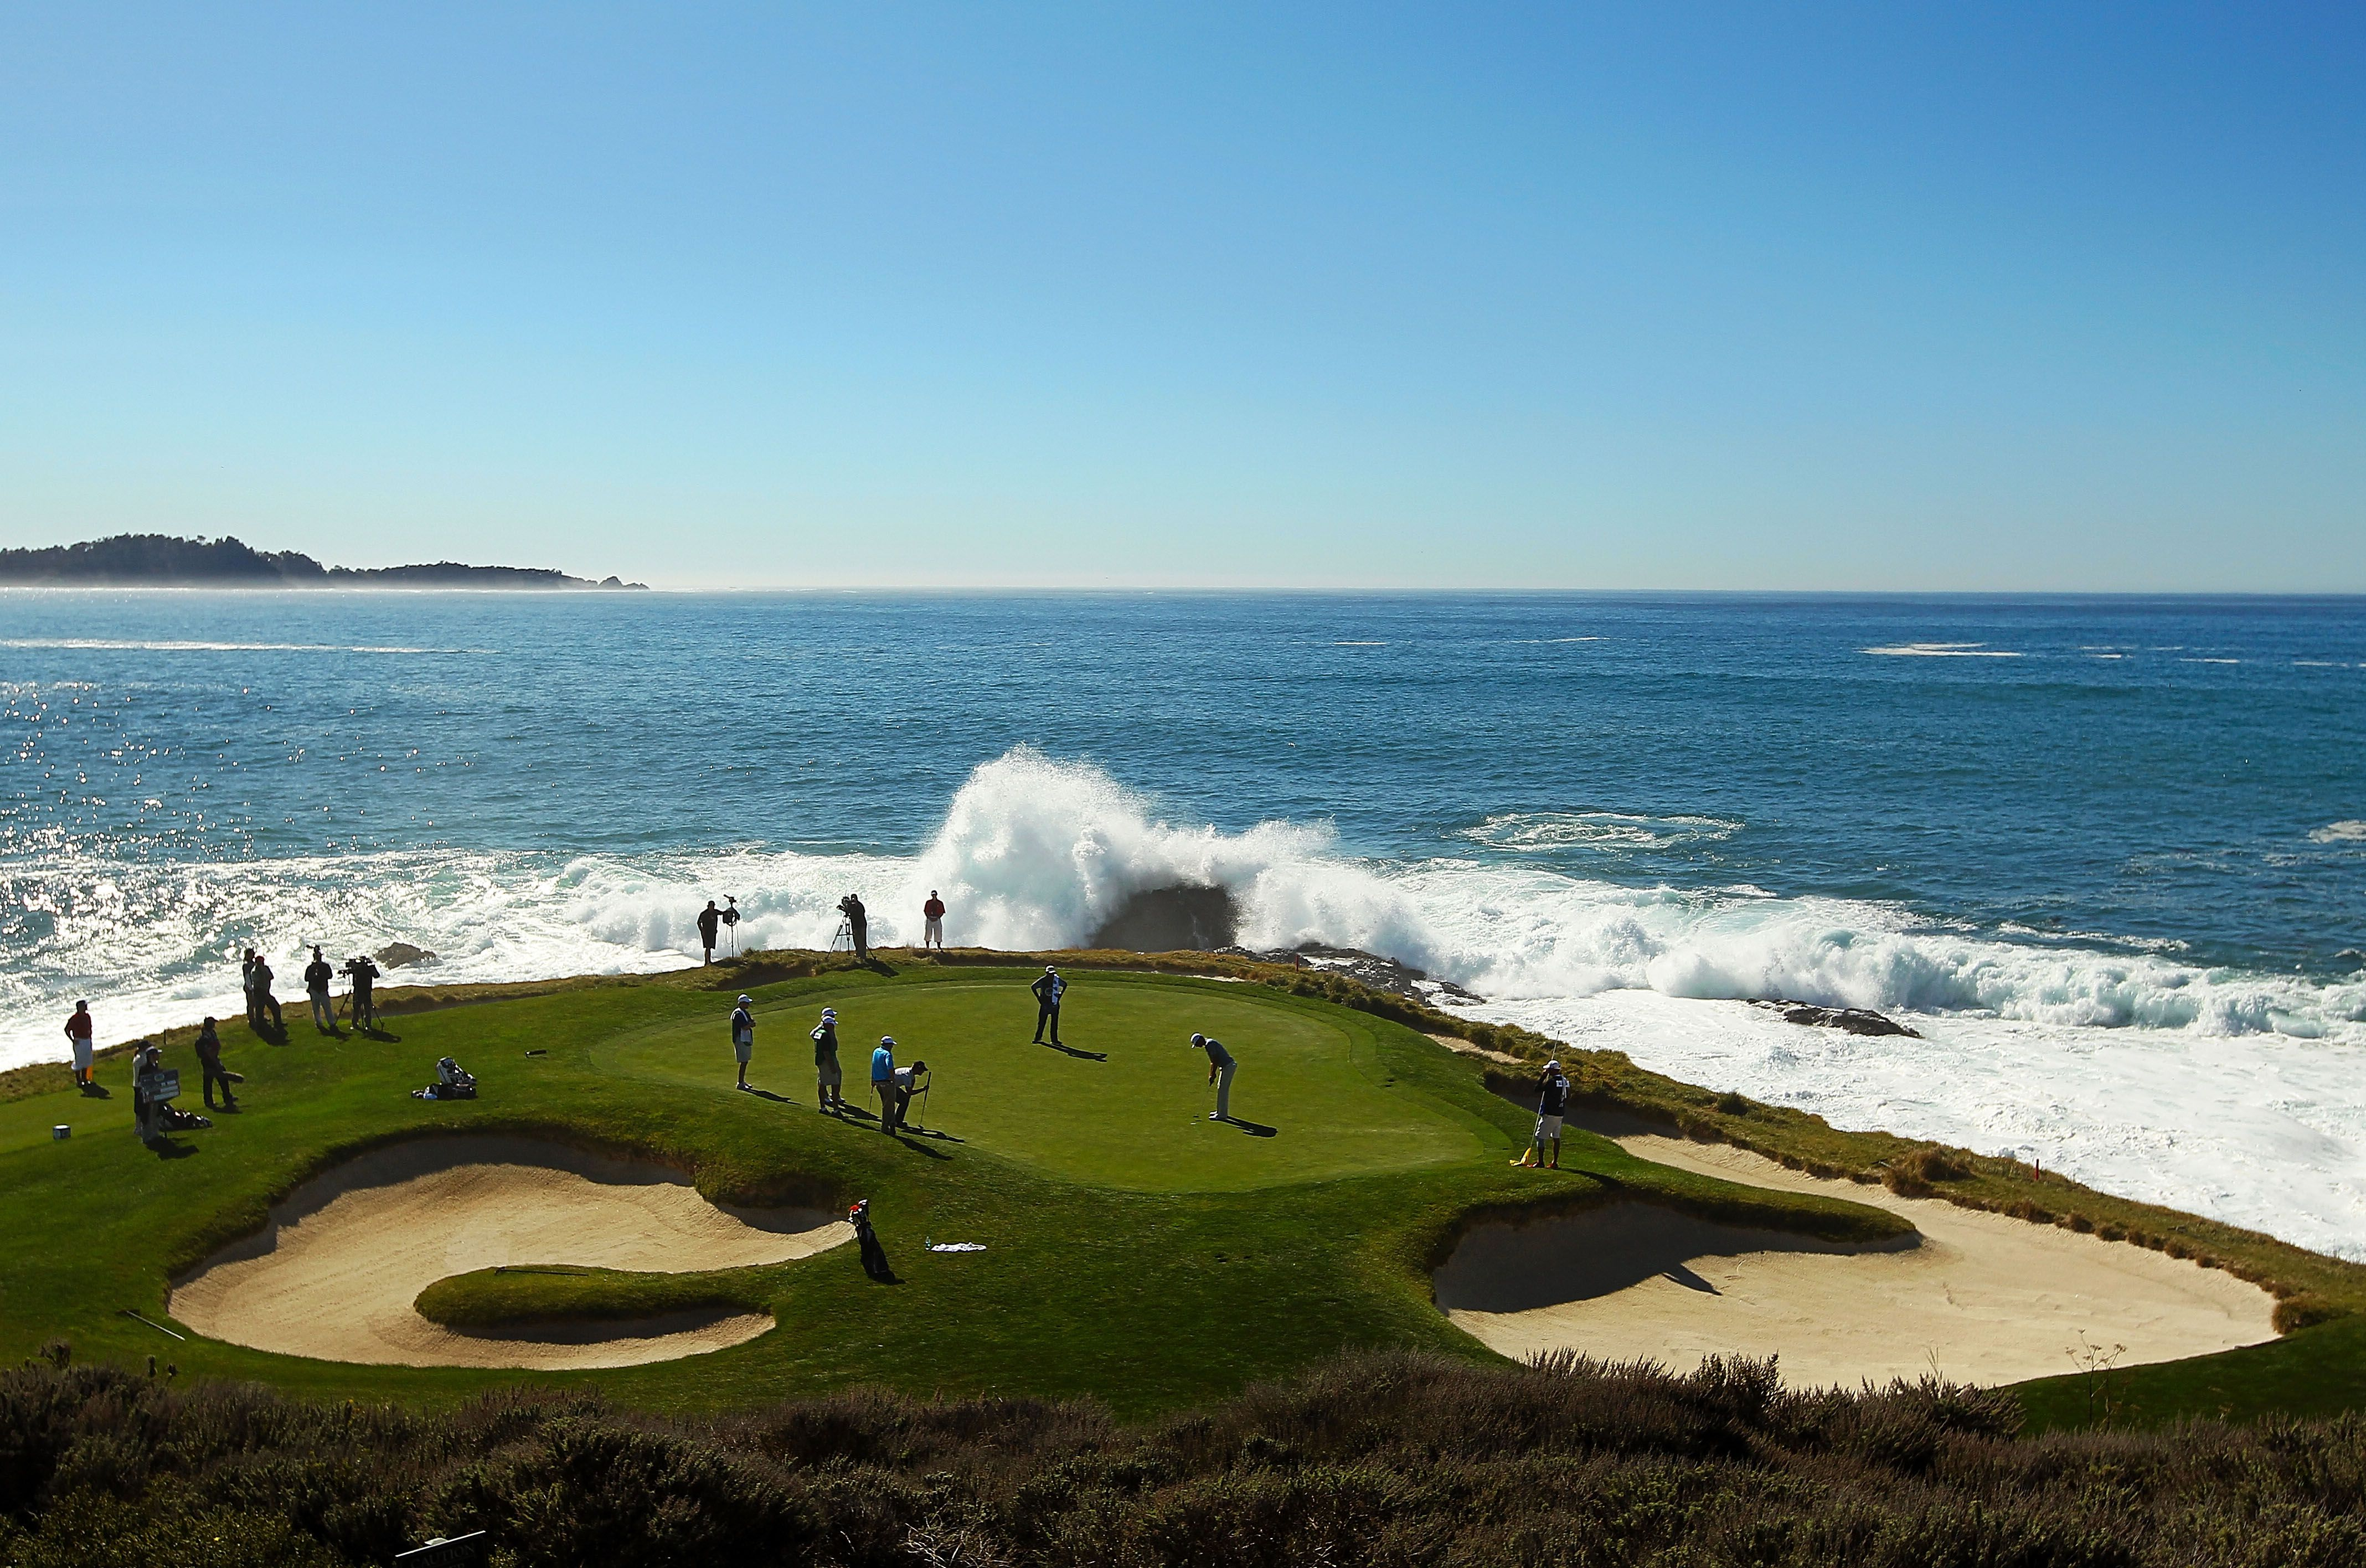 Golfers On The 7th Green At Pebble Beach As Waves Crash Behind